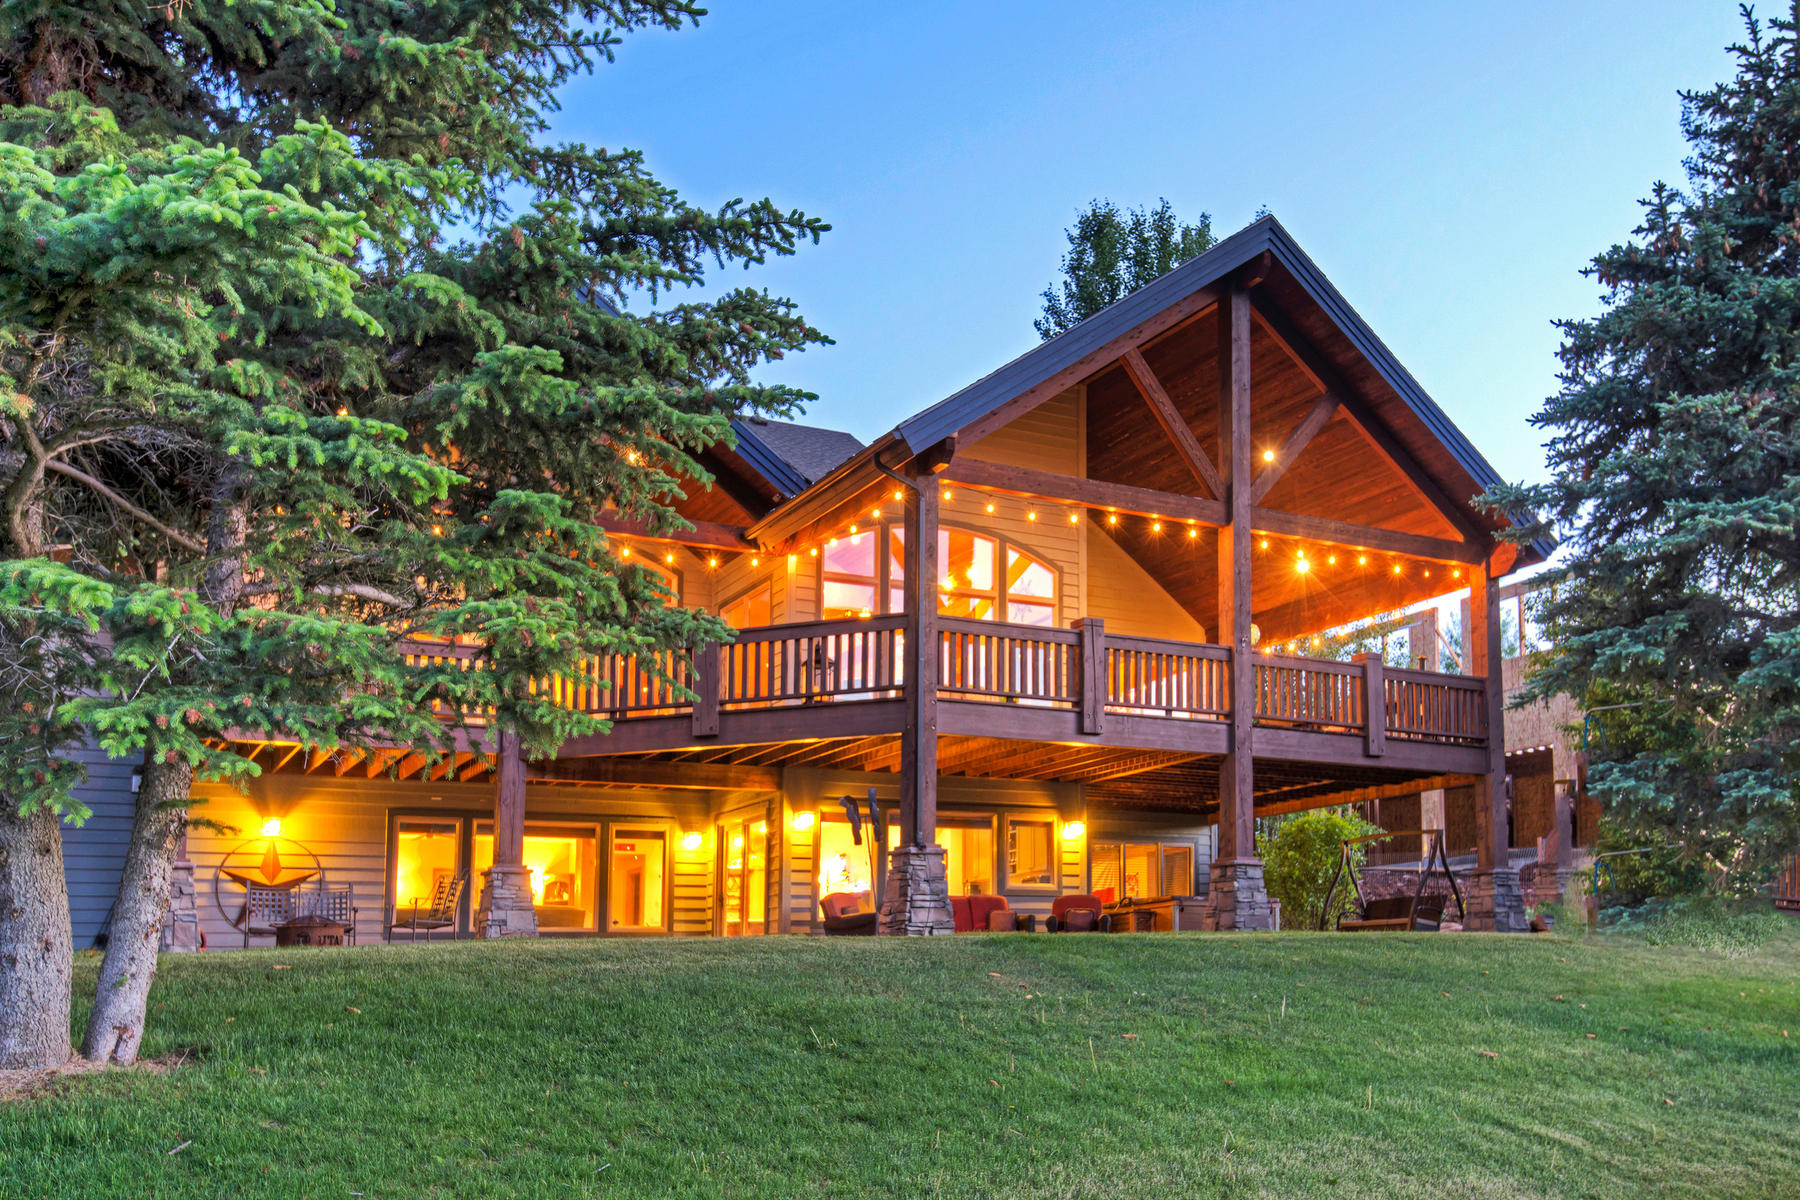 Single Family Home for Sale at Supreme Quality in Your Own Private World 3198 W Creek Rd Park City, Utah, 84098 United States